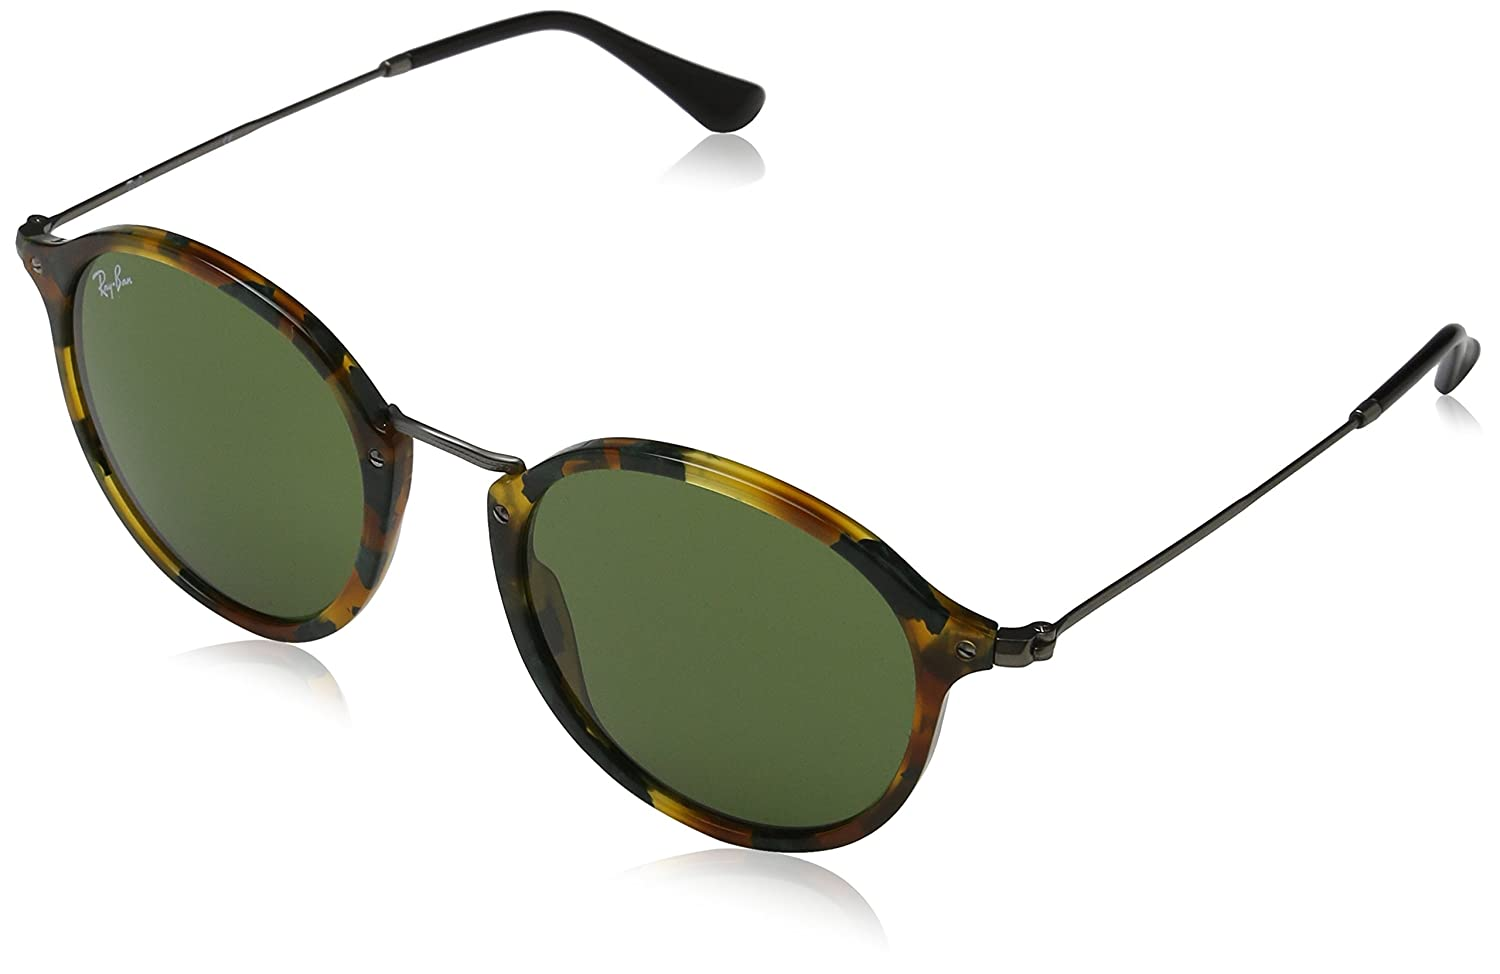 Ray-Ban メンズ B01ER711AE 52 mm|Spotted Green Havana Spotted Green Havana 52 mm